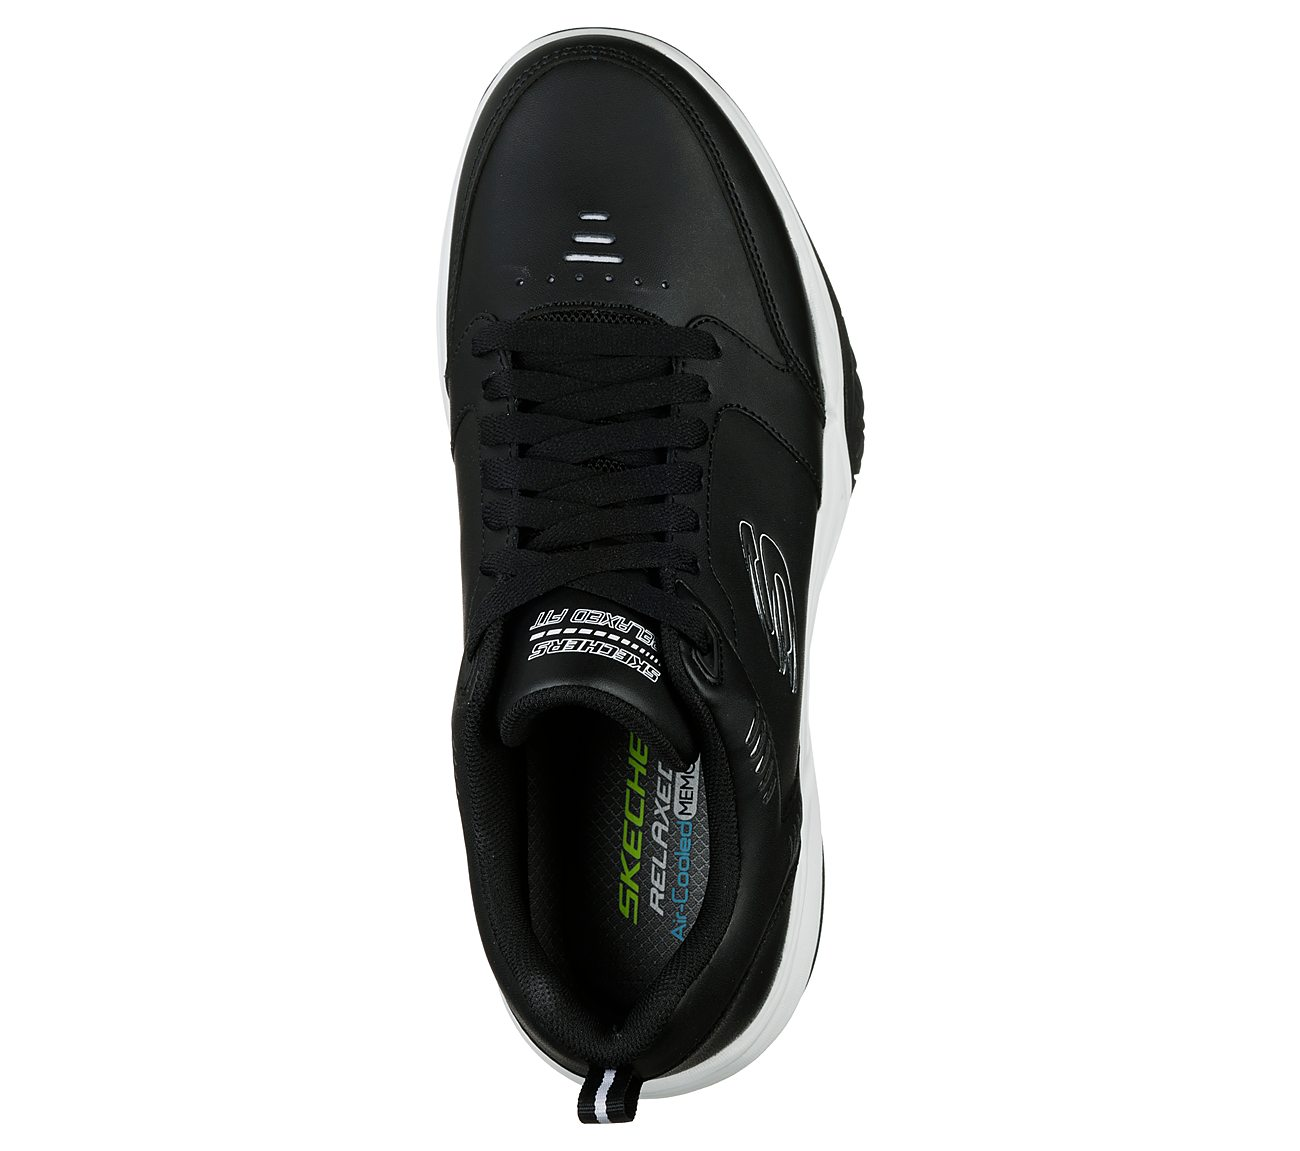 4324ef96 Buy SKECHERS Relaxed Fit: Monaco TR - Gold Cats Exclusives Shoes ...